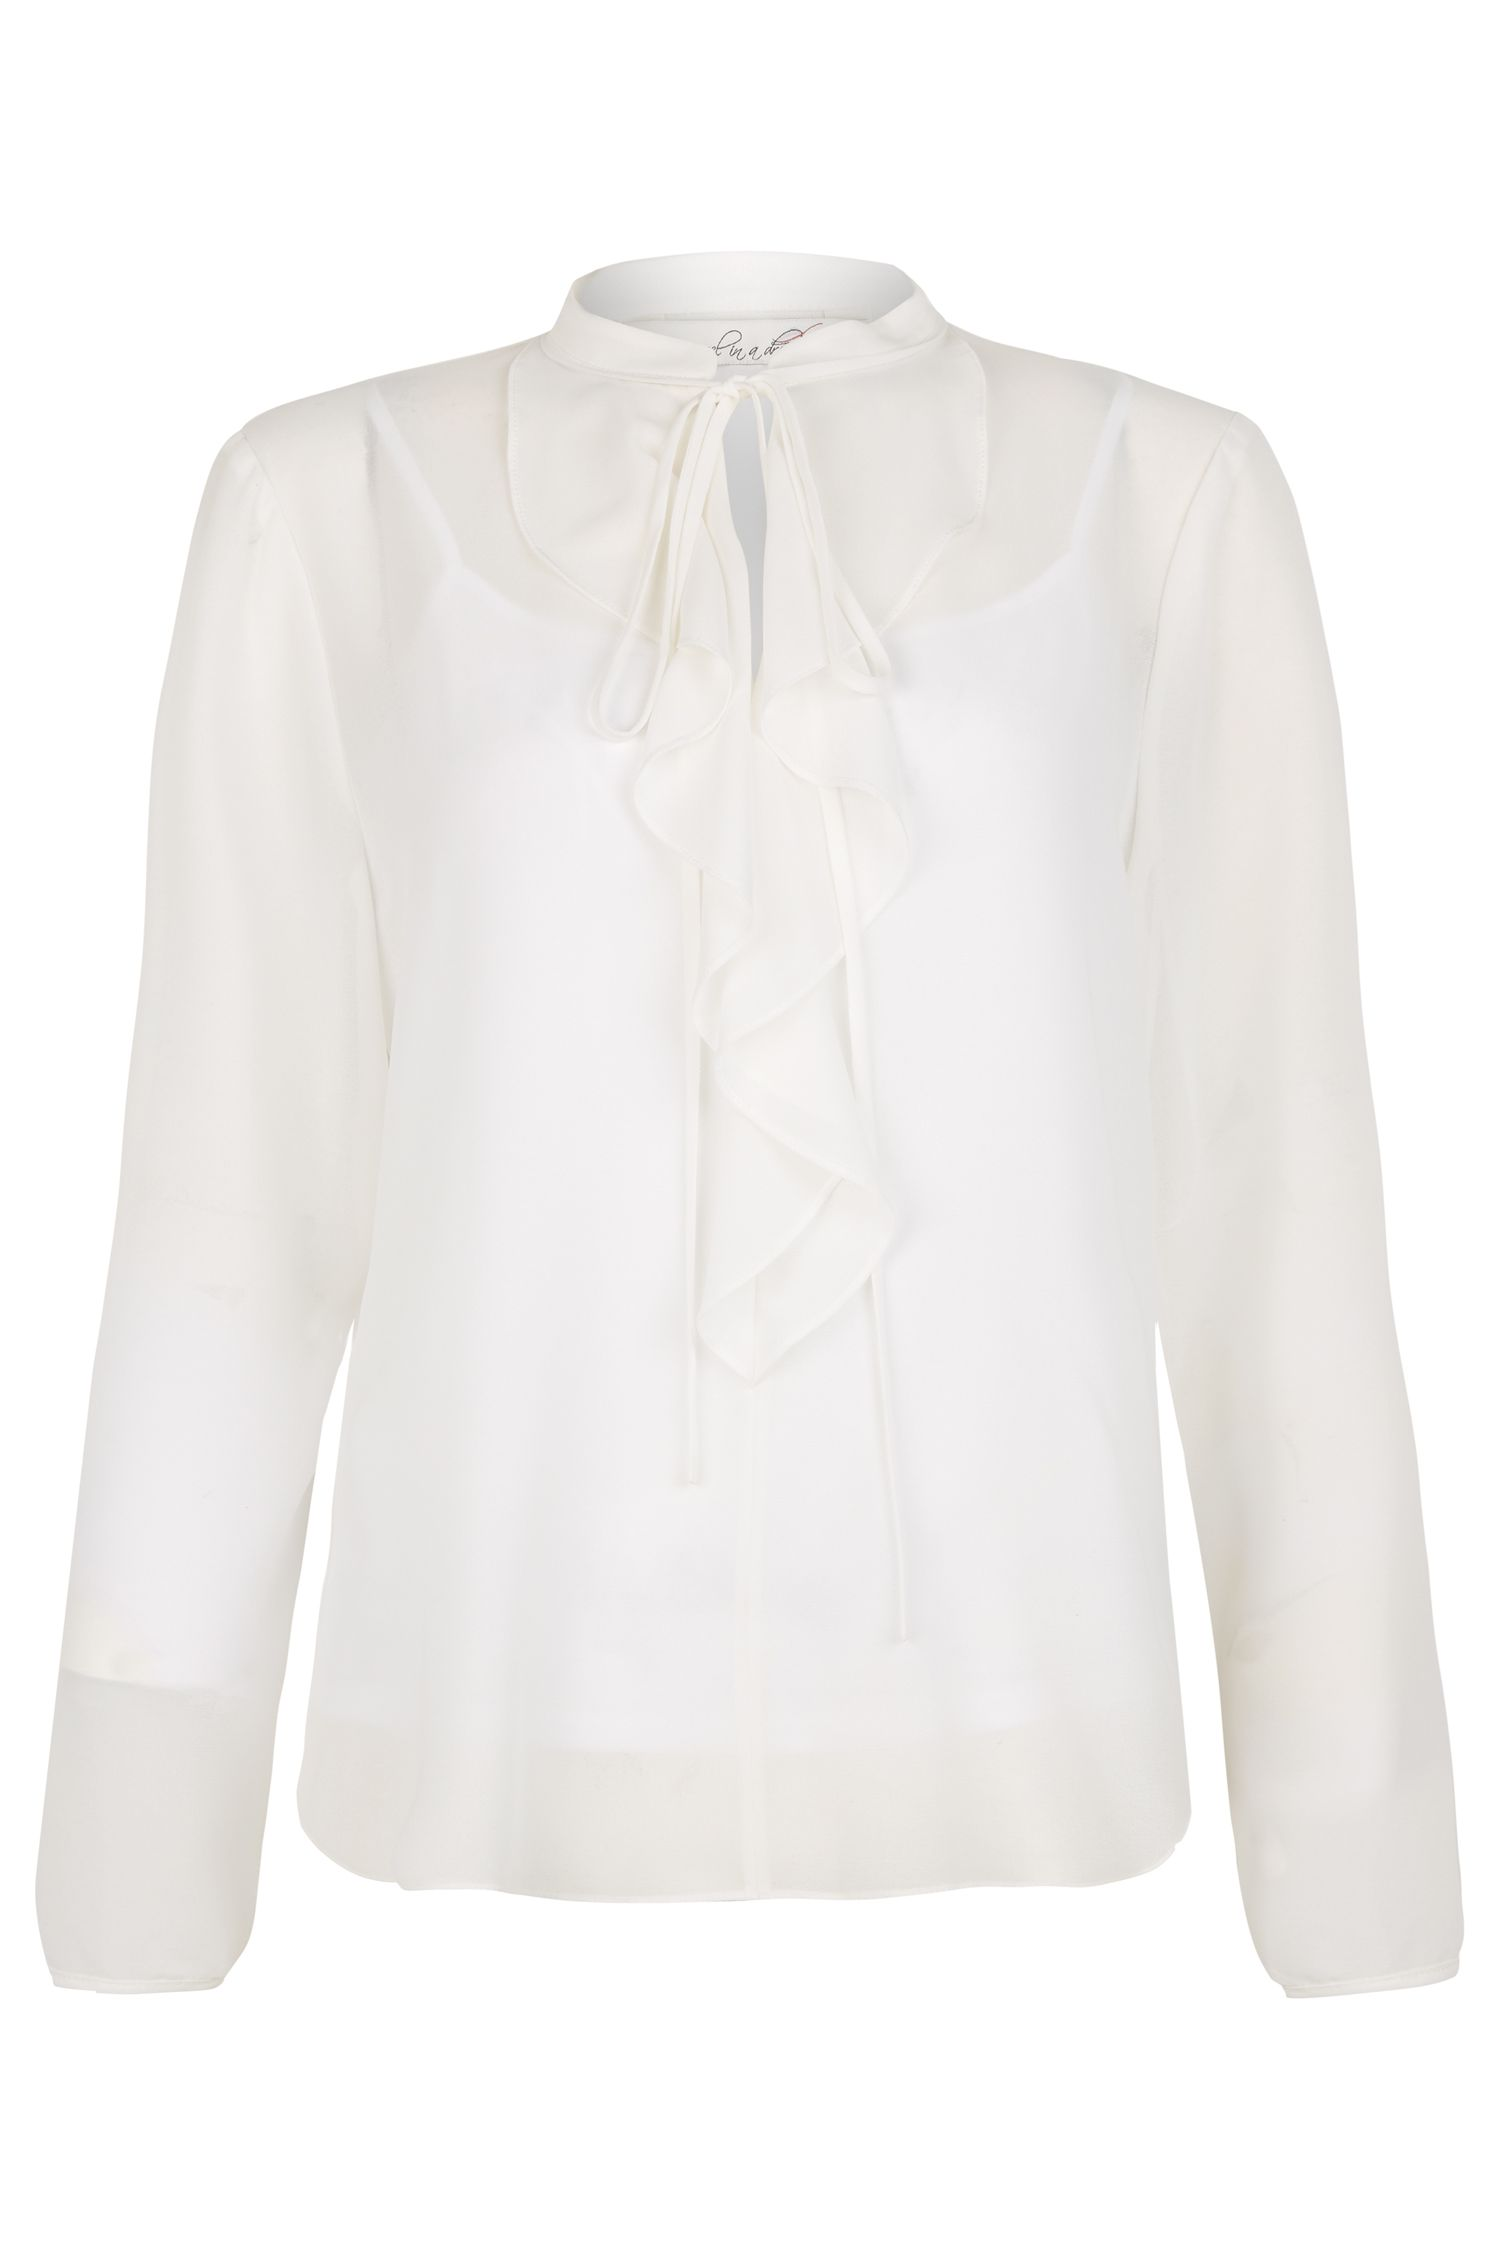 Edwardian Style Blouses Damsel in a Dress Lia Frill Blouse Cream £44.00 AT vintagedancer.com